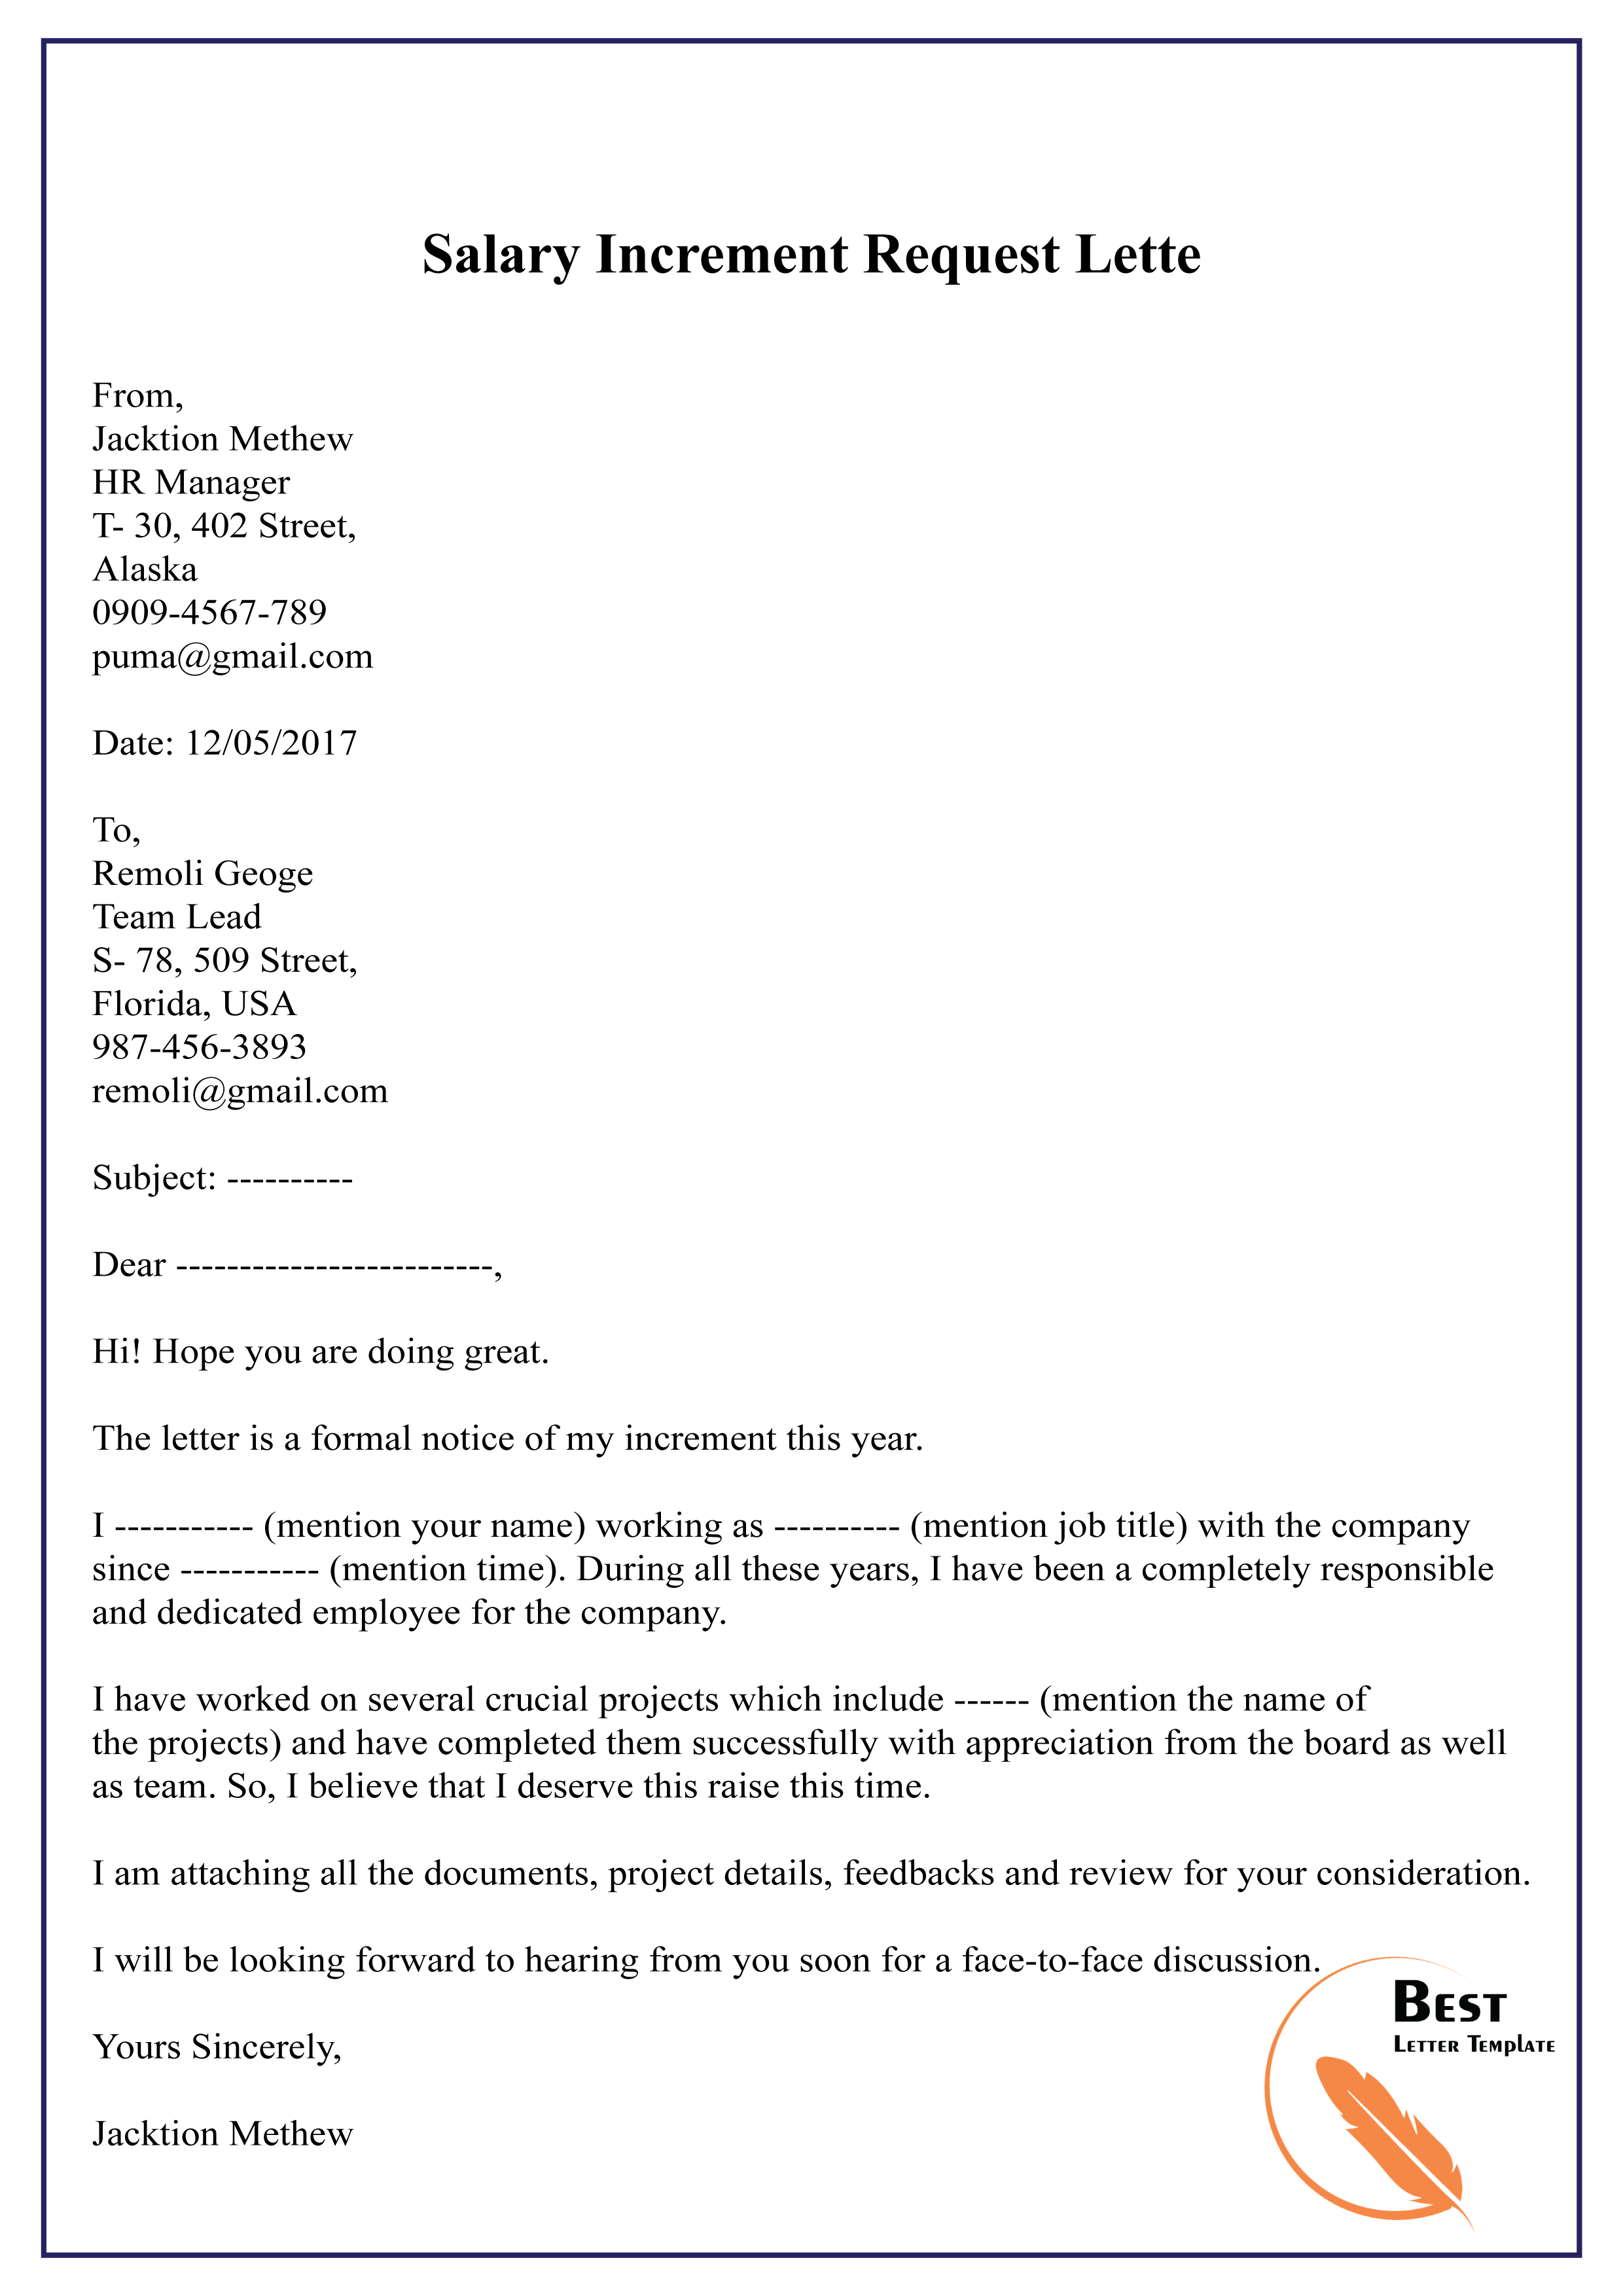 Raise Request Letter Template from bestlettertemplate.com